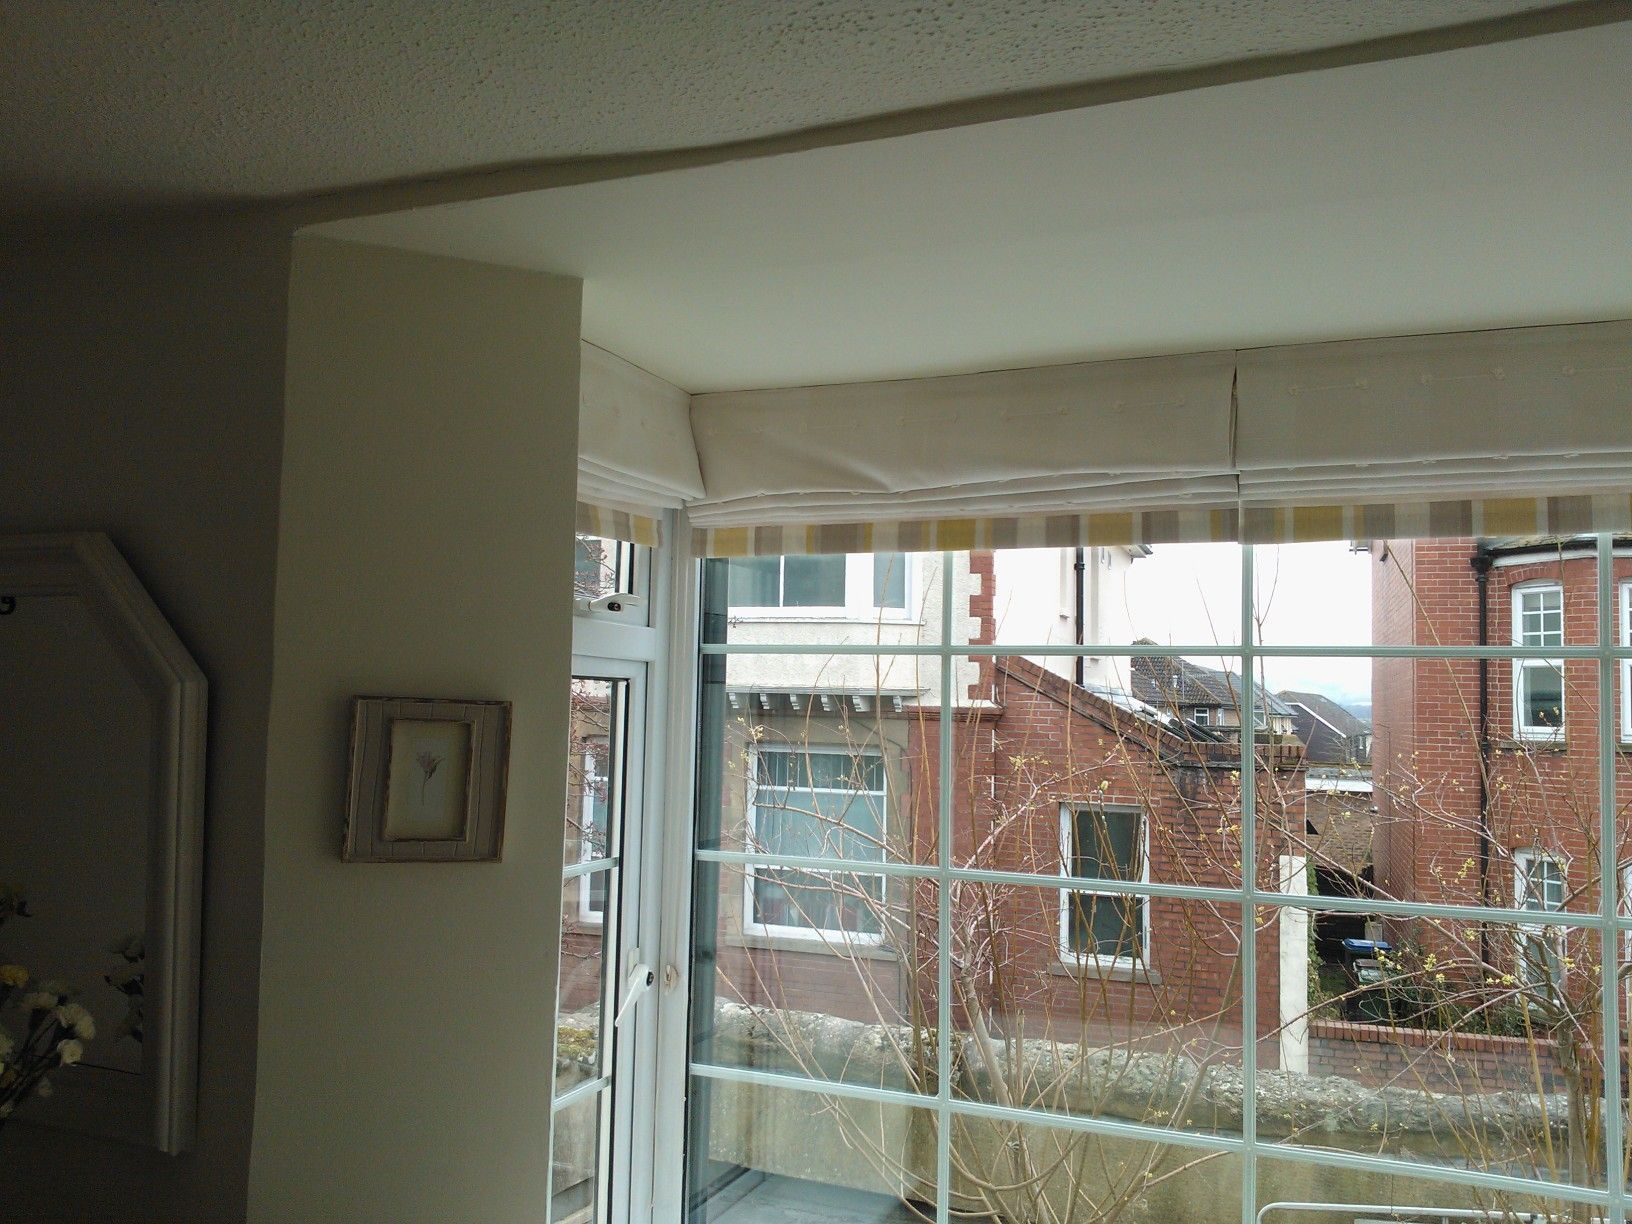 Square Bay Window 4 Sets Of Roman Blinds Lined With Bottom Border